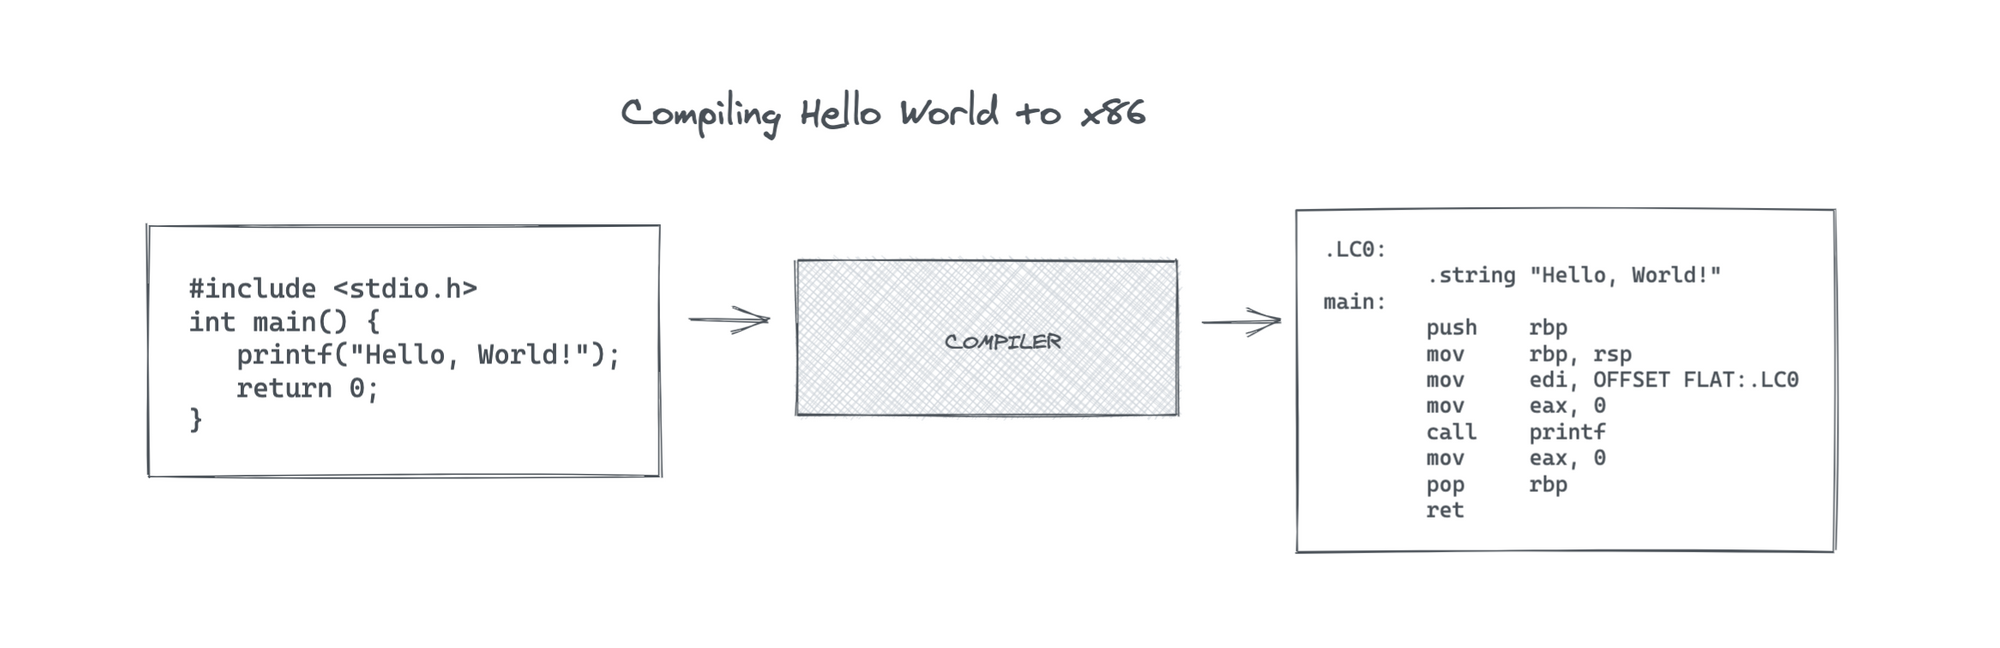 Compiling Hello World to X86 assembly